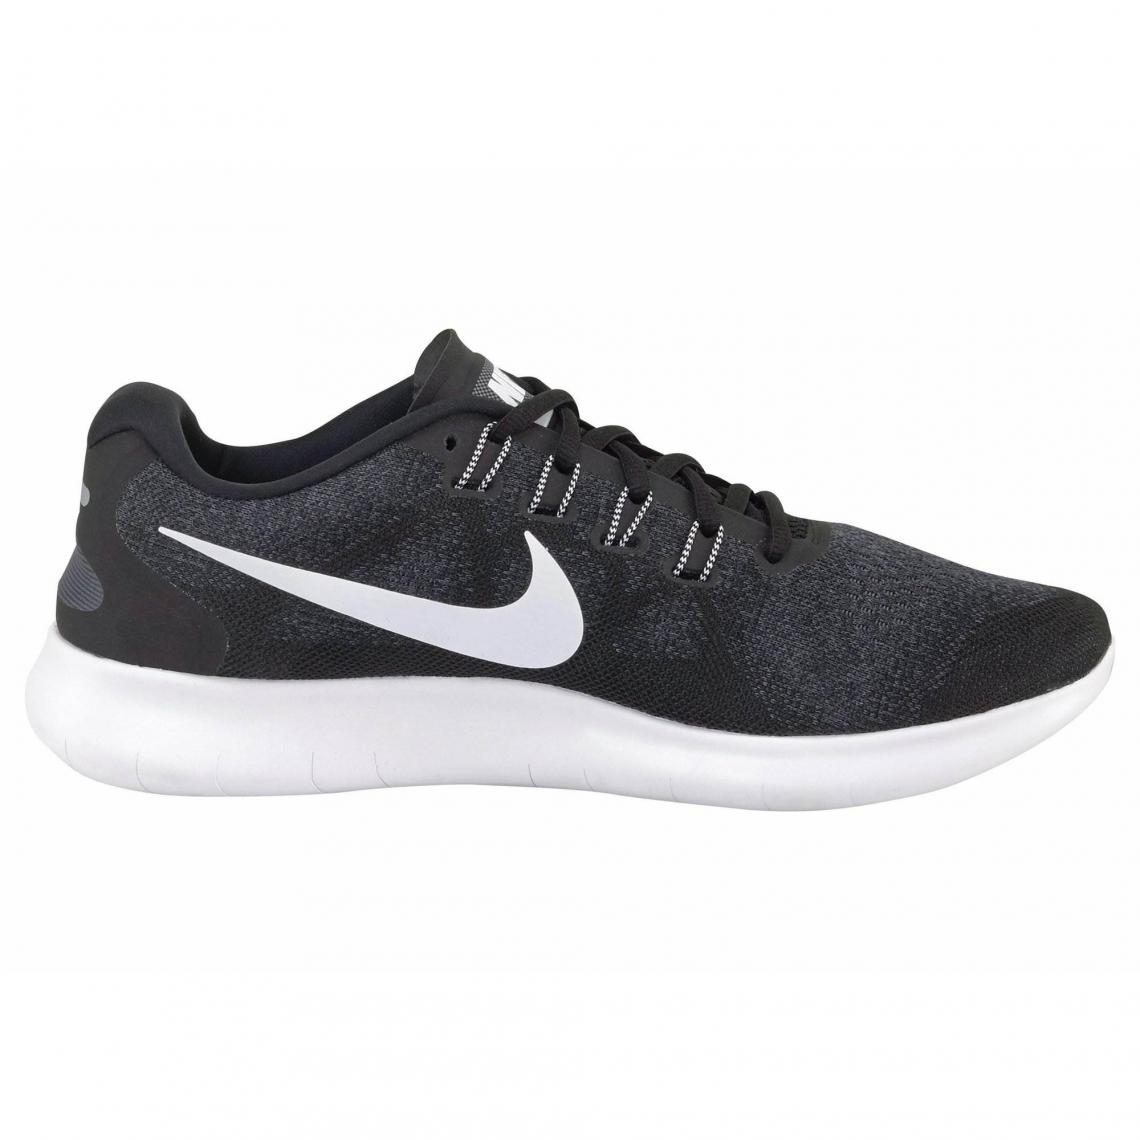 chaussures nike femme noire